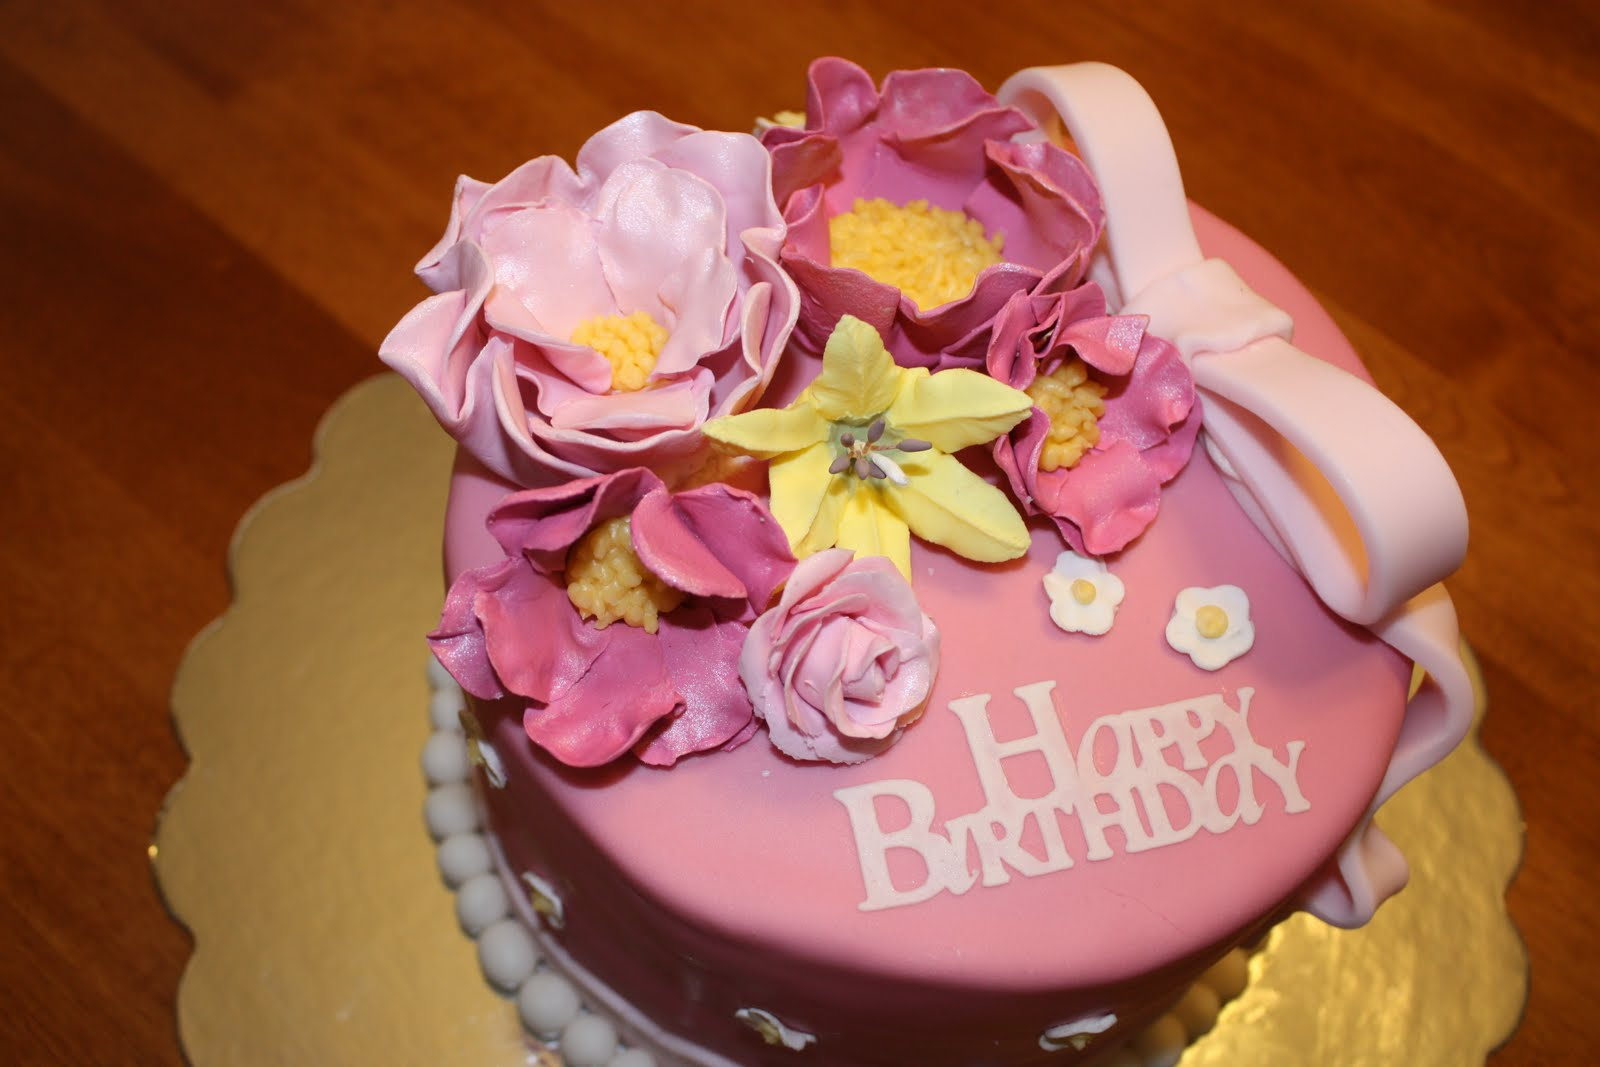 10 Best Happy Birthday Wishes Images With Quotes Birthday Cake